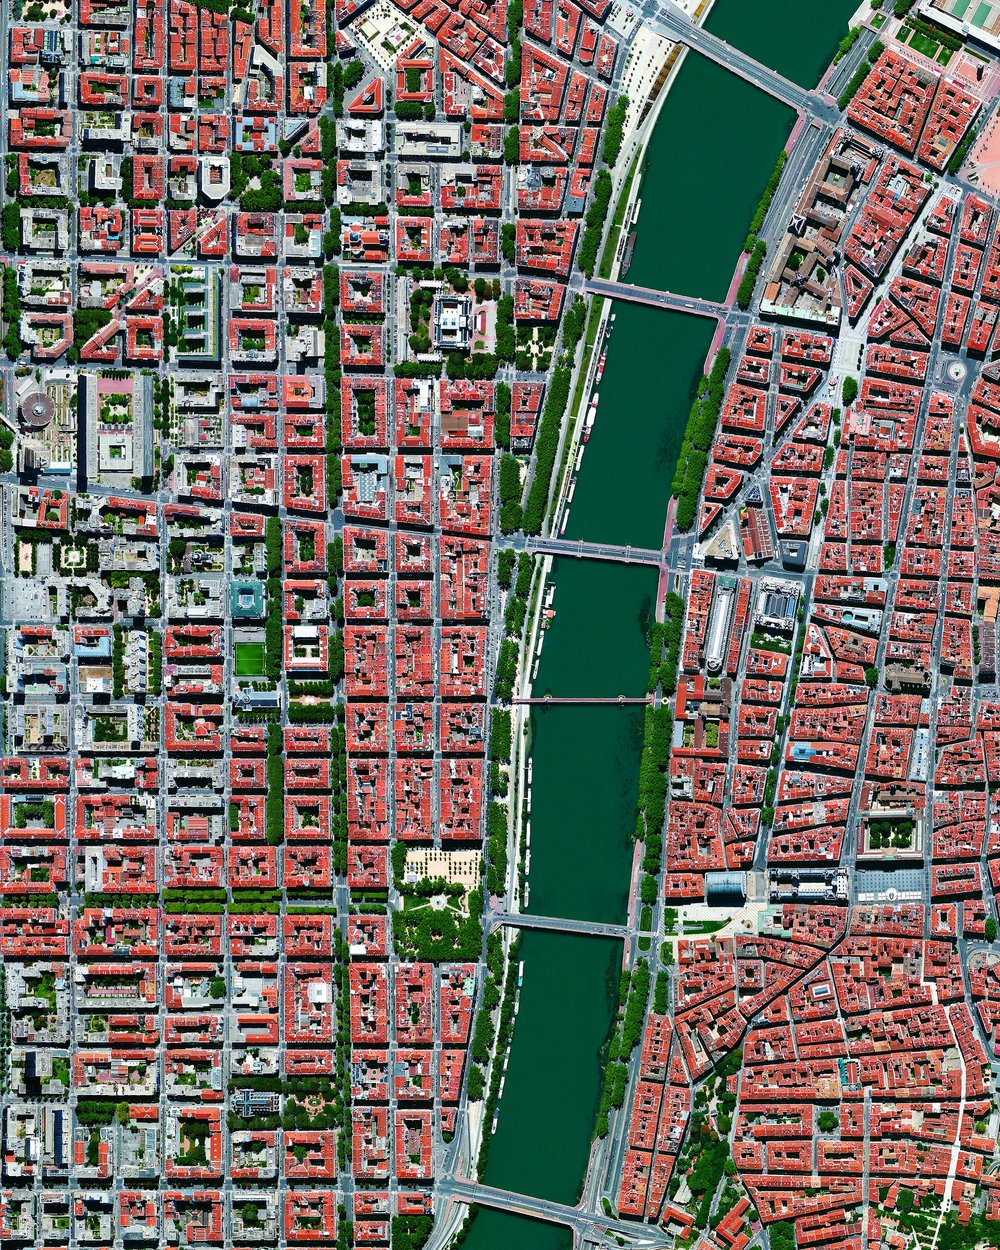 The city of Lyon is the third largest city in France and is situated at the convergence of the Rhône and Saône Rivers. A section of the city, split by the Rhône, is seen in this Overview. Lyon is often recognized as the birthplace of cinema - pioneered by the Lumière brothers here in 1895 - as well as a major culinary center.  45.7626909, 4.8390297